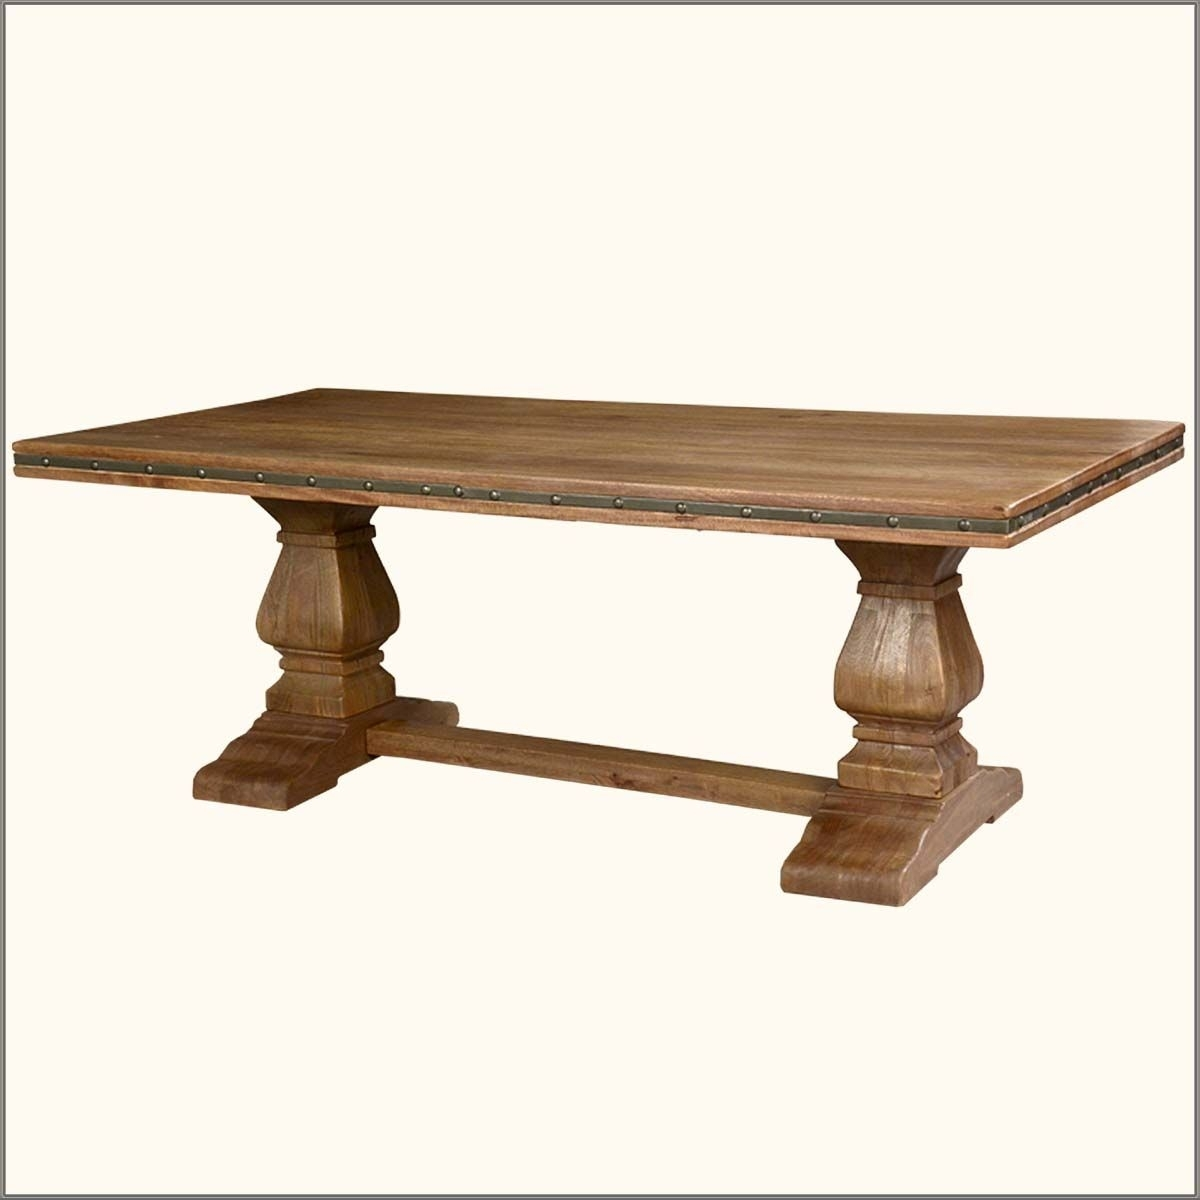 Rustic Solid Wood Trestle Pedestal Base Harvest Dining Table | Table Regarding Current Natural Wood & Recycled Elm 87 Inch Dining Tables (View 8 of 20)